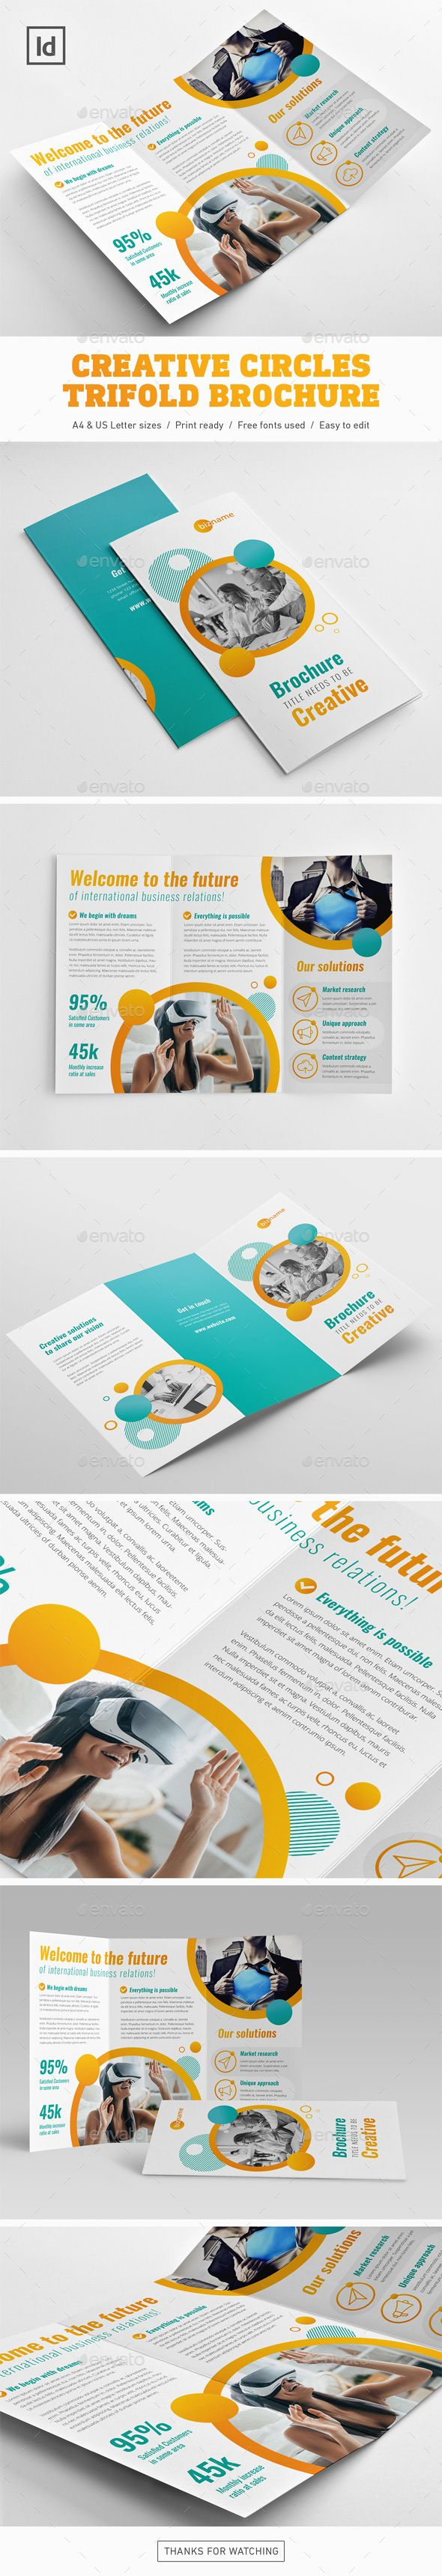 creative circles trifold brochure template indesign indd brochure